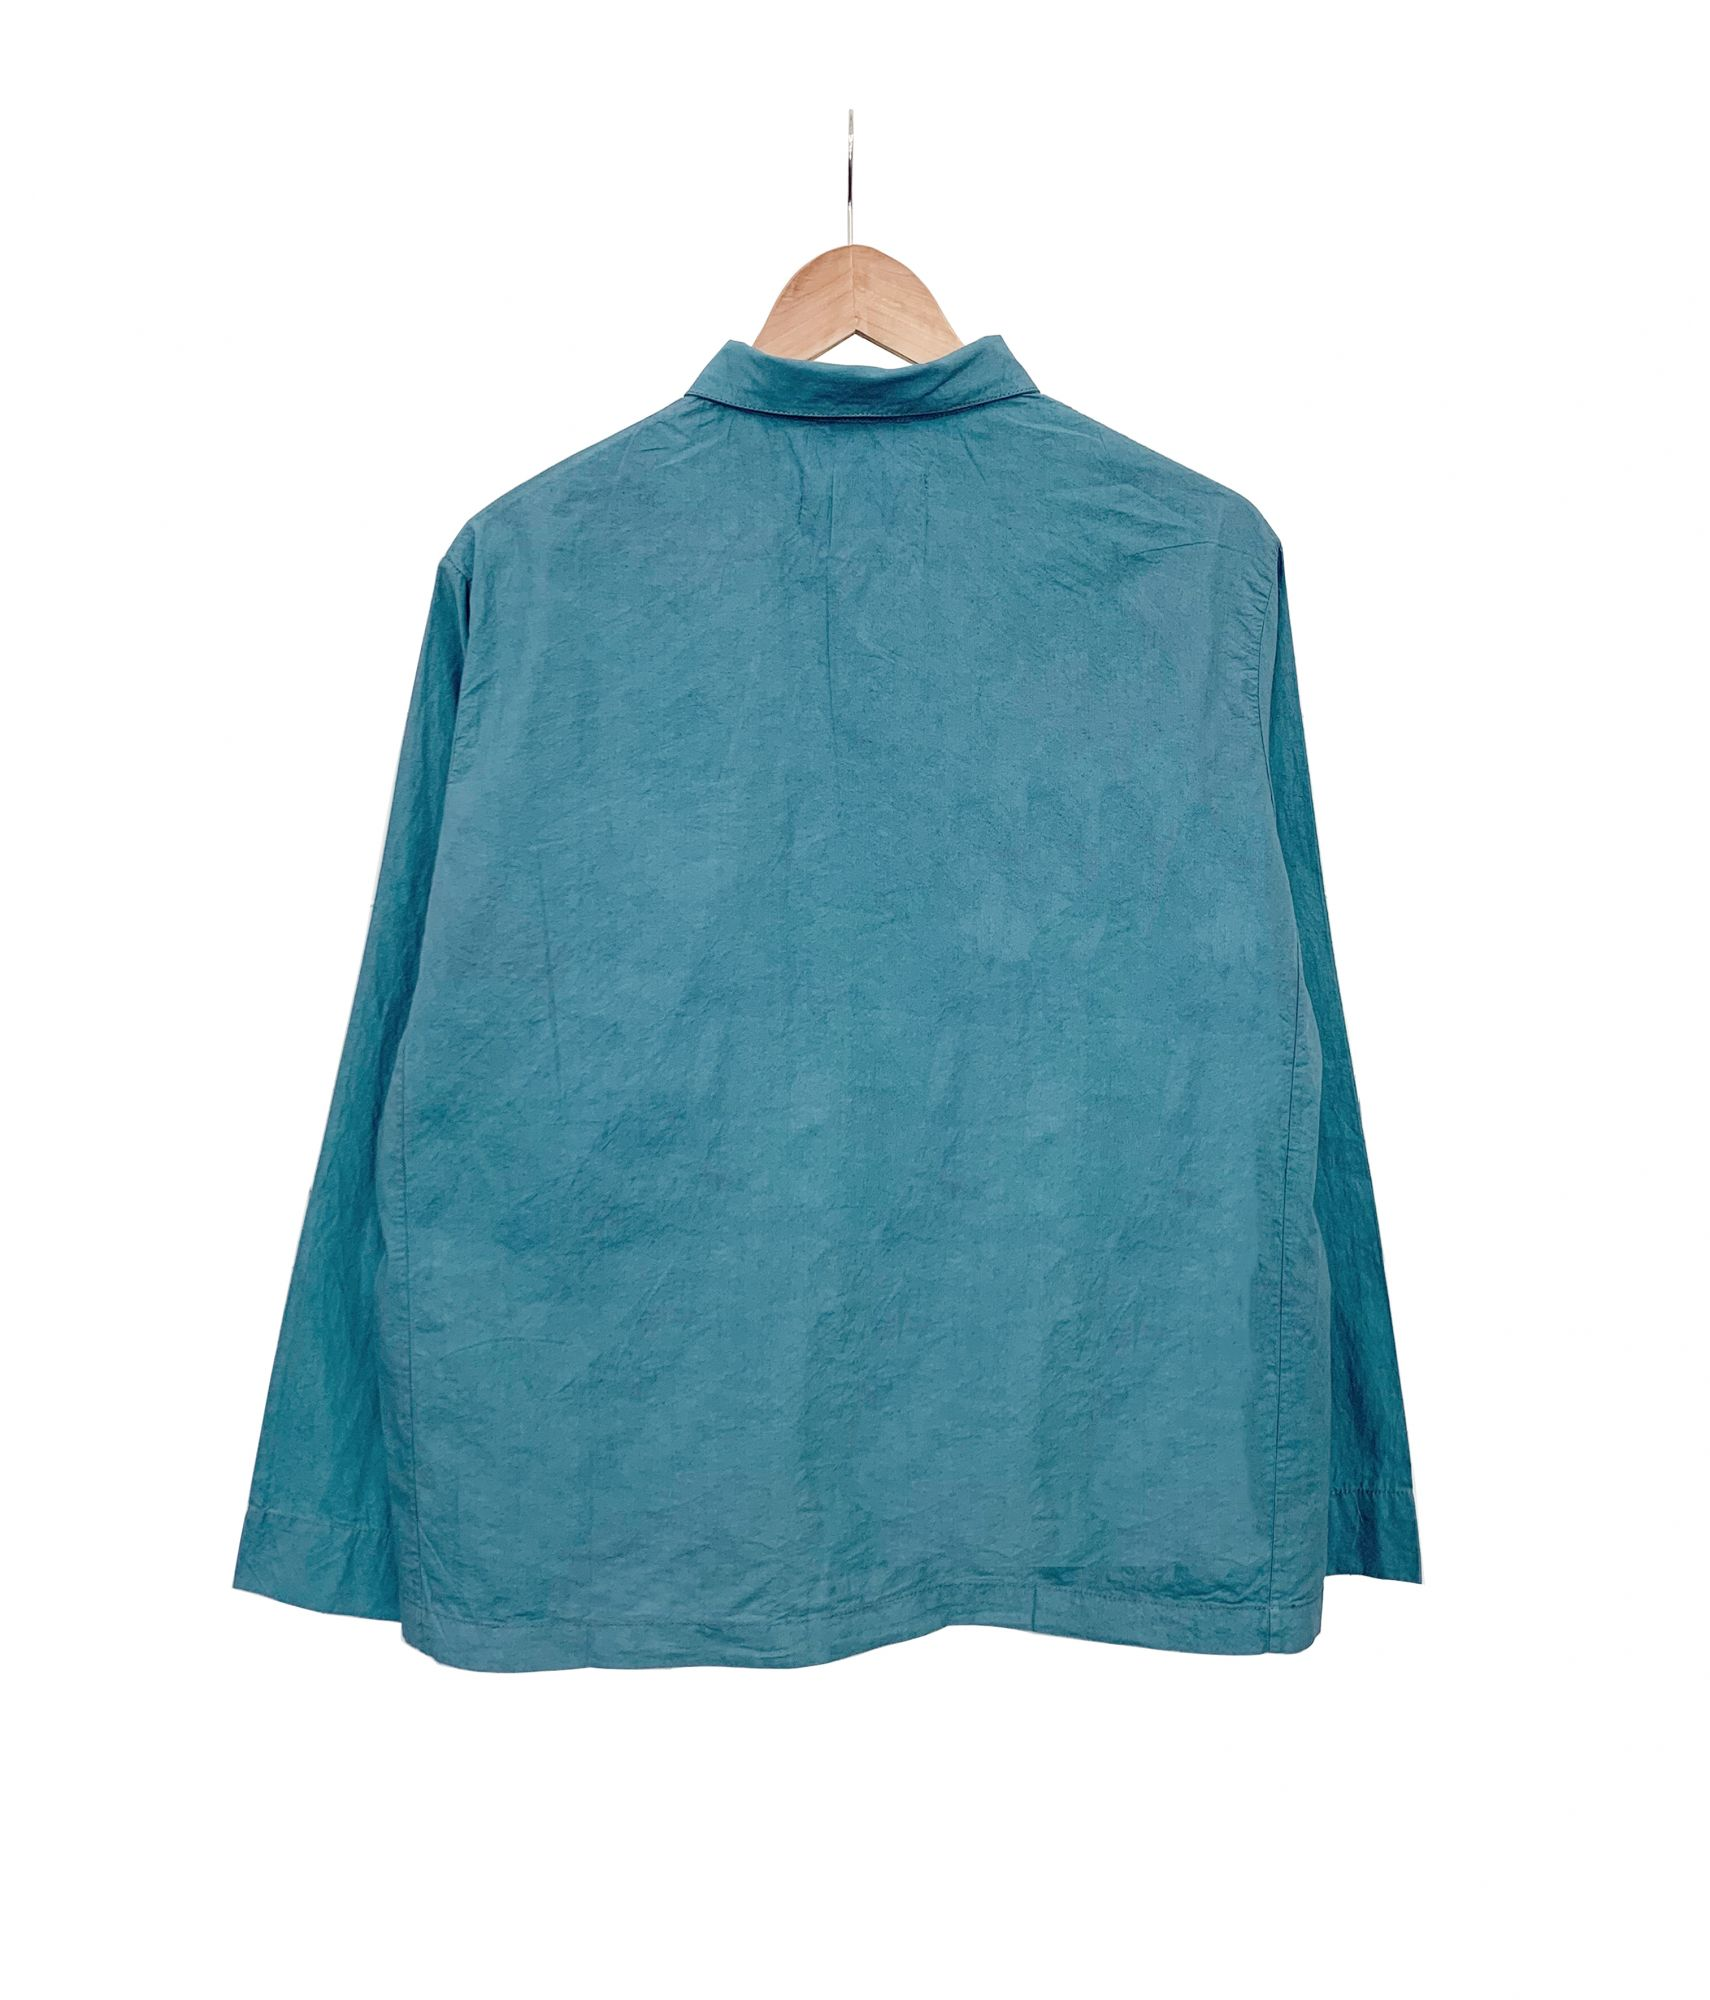 Zap Jacket - Teal